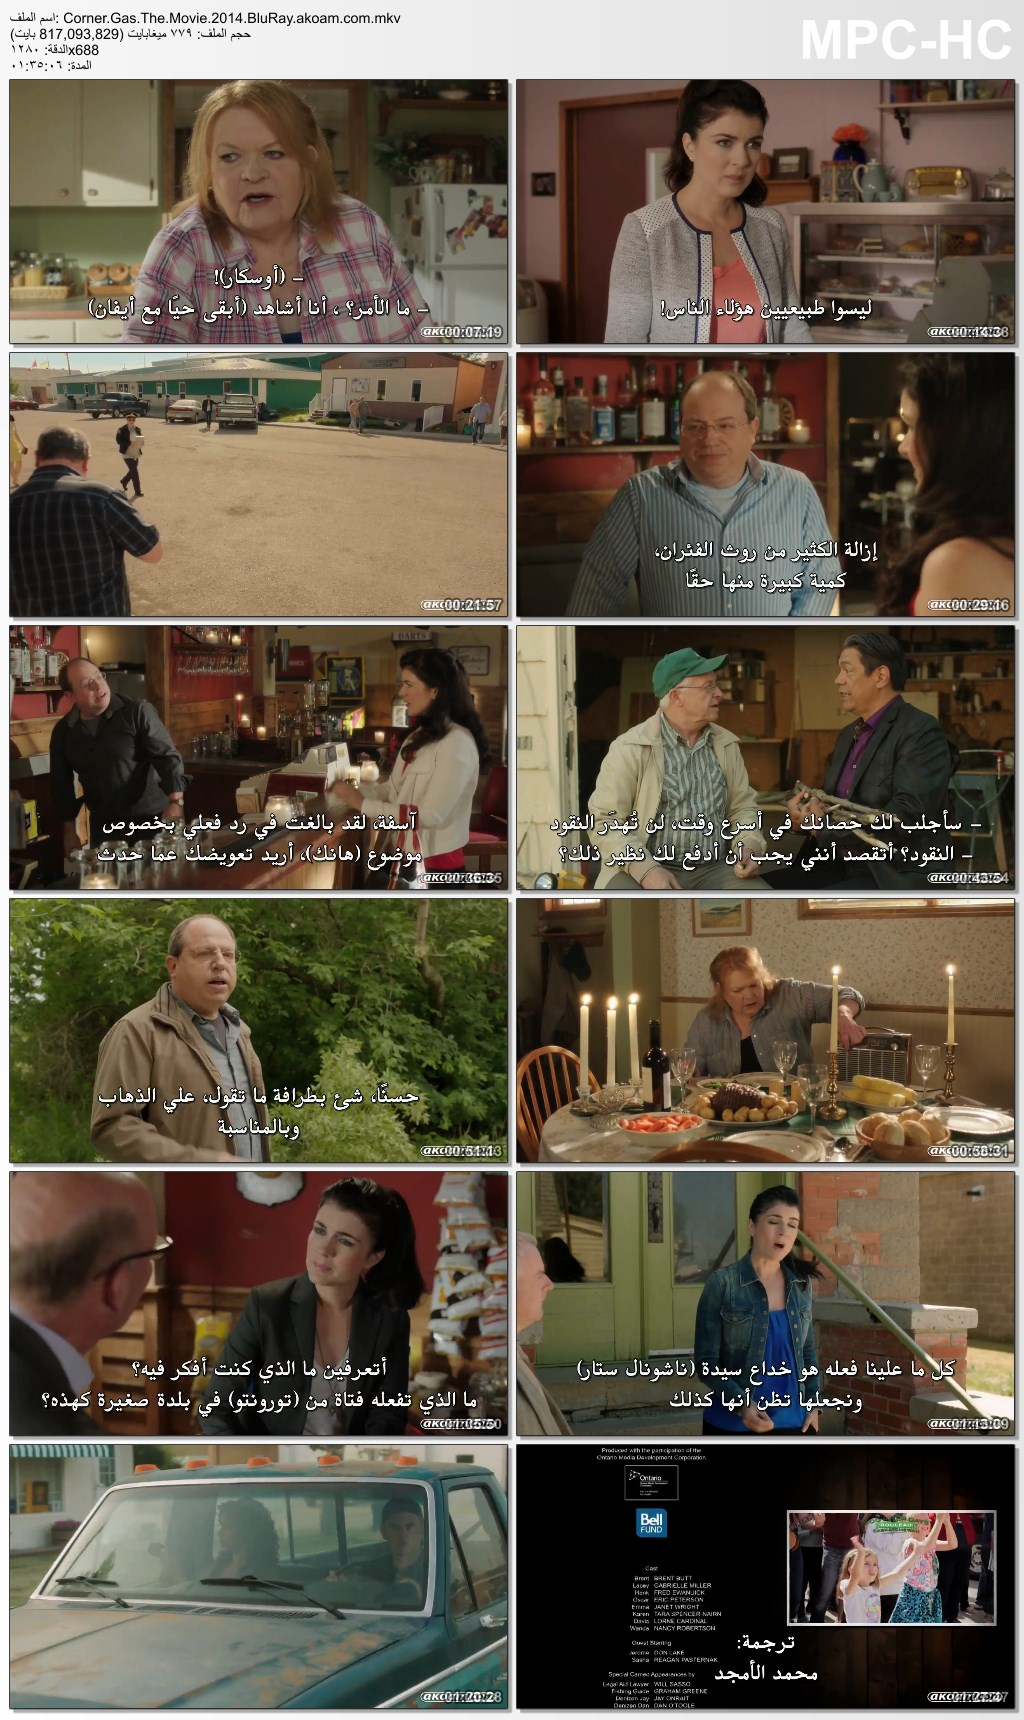 Corner Gas: The Movie,البلوراي,الكوميديا,Corner Gas,The Movie,Corner Gas: The Movie 2014,Brent Butt